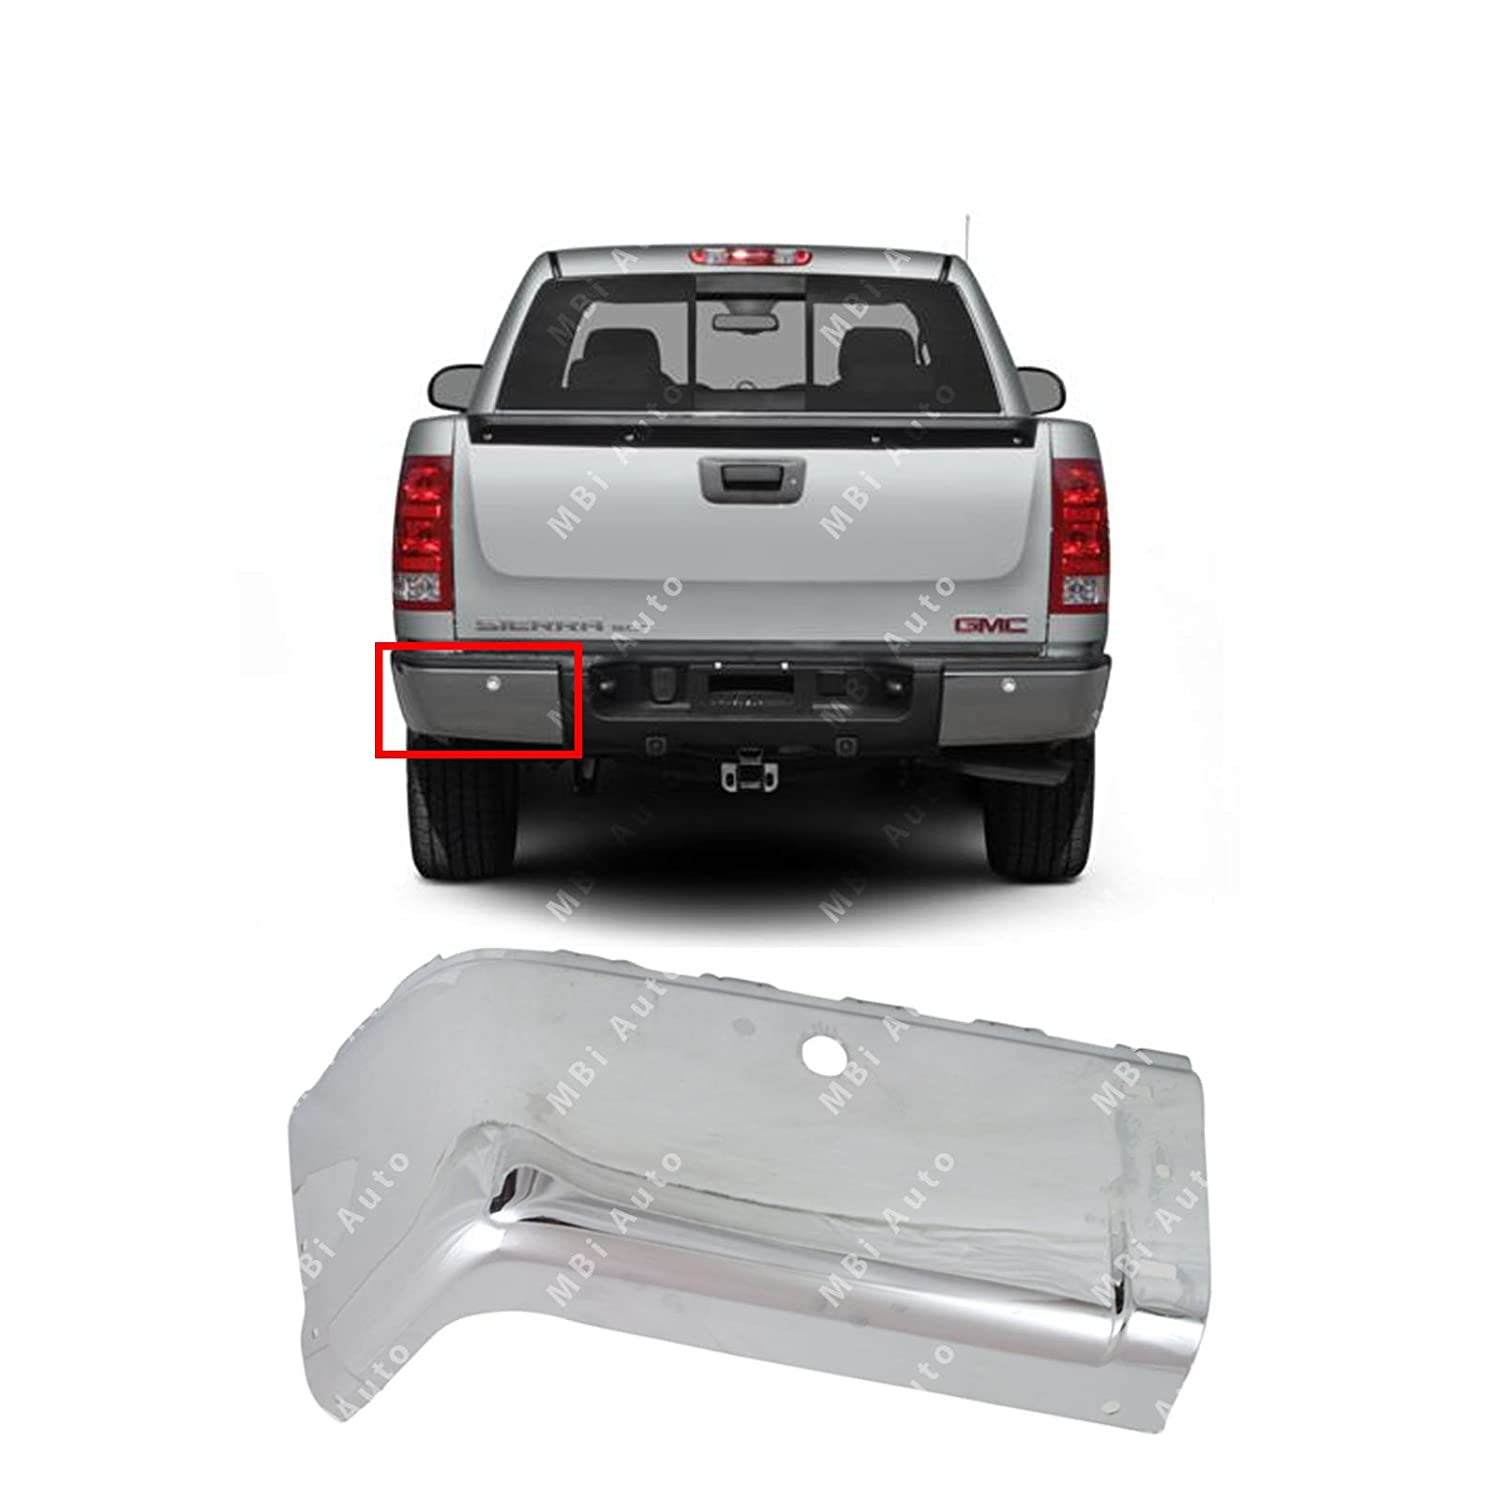 Chrome GM1104147 BUMPERS THAT DELIVER Steel Rear Driver Side Bumper End for 2007-2013 Chevy Silverado GMC Sierra 1500 2500 3500 07-13